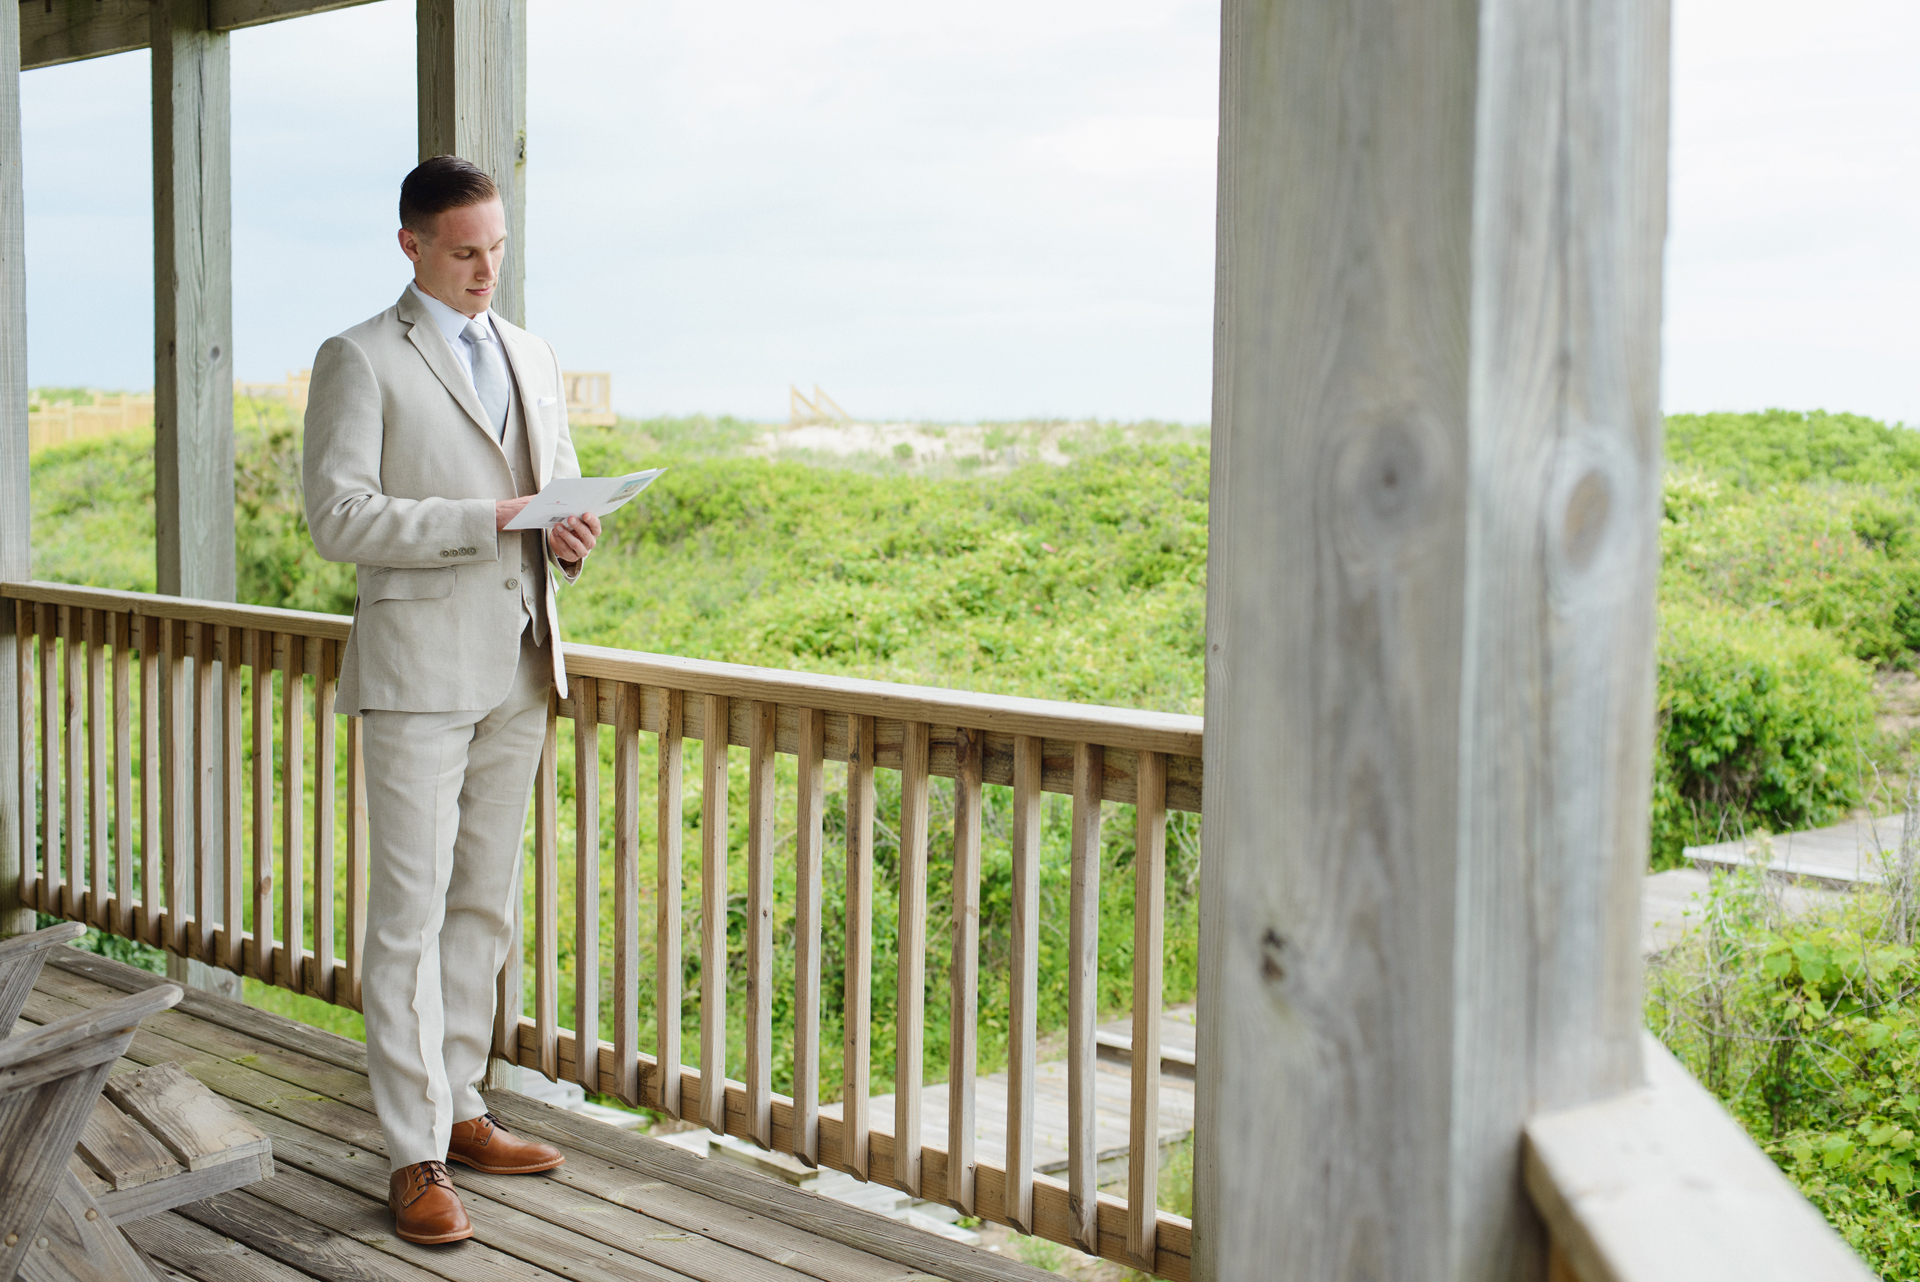 Corolla, North Carolina Elopement Getting Ready Image | Groom reading letter from the bride before their wedding ceremony